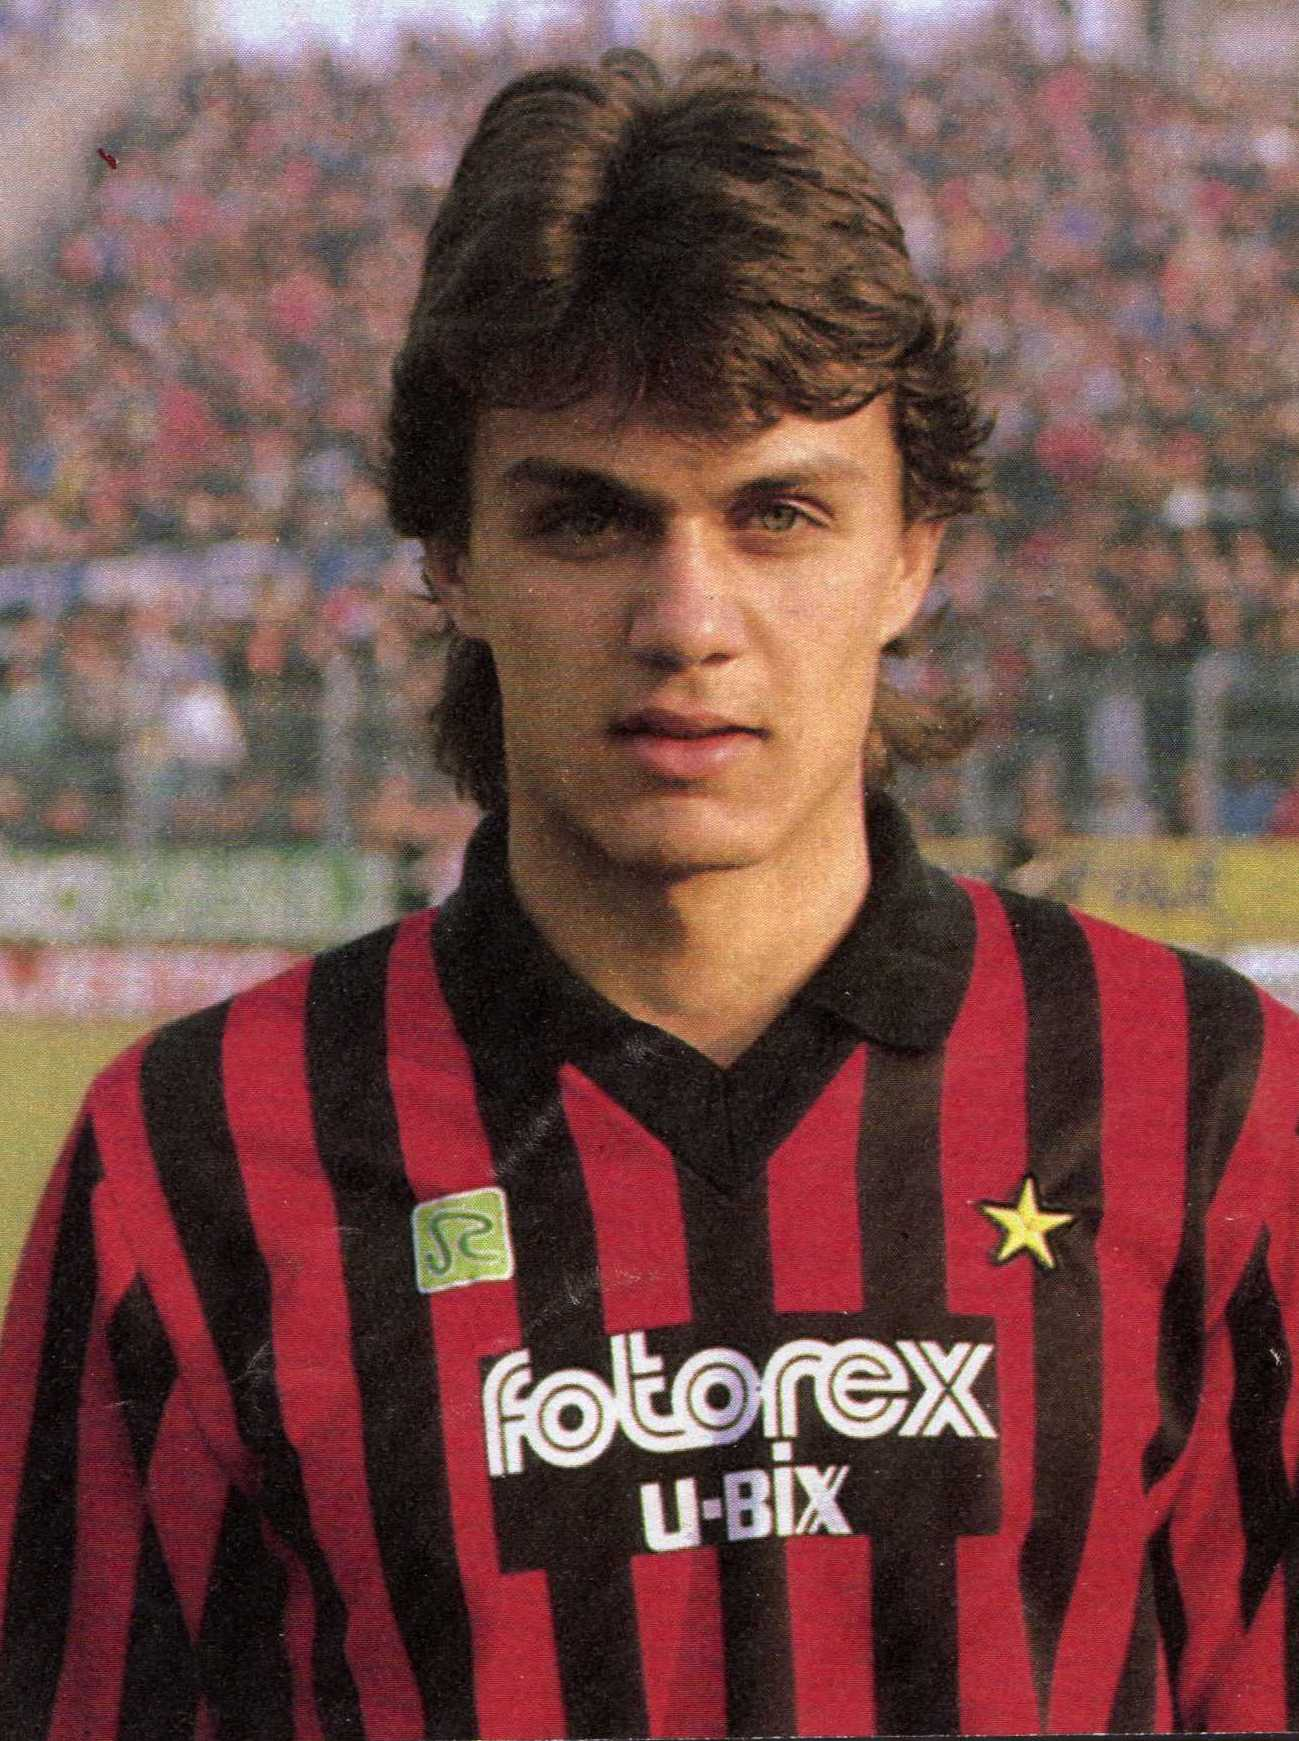 Paolo Maldini younger photo one at pinterest.com